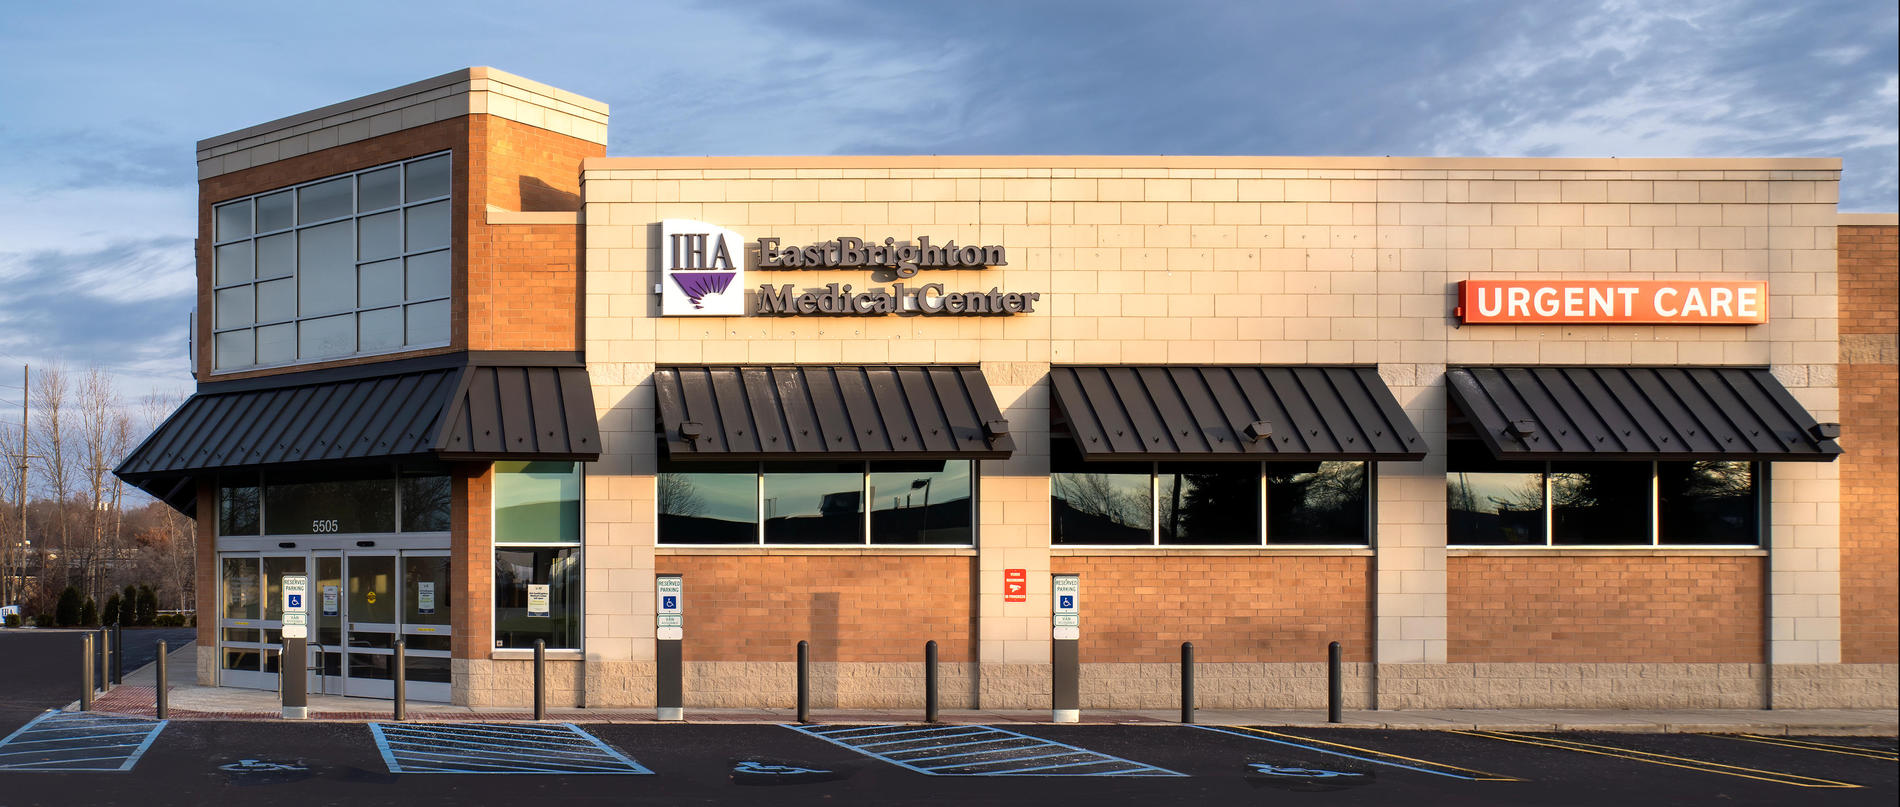 IHA Urgent Care EastBrighton is located in the IHA EastBrighton Medical Center.